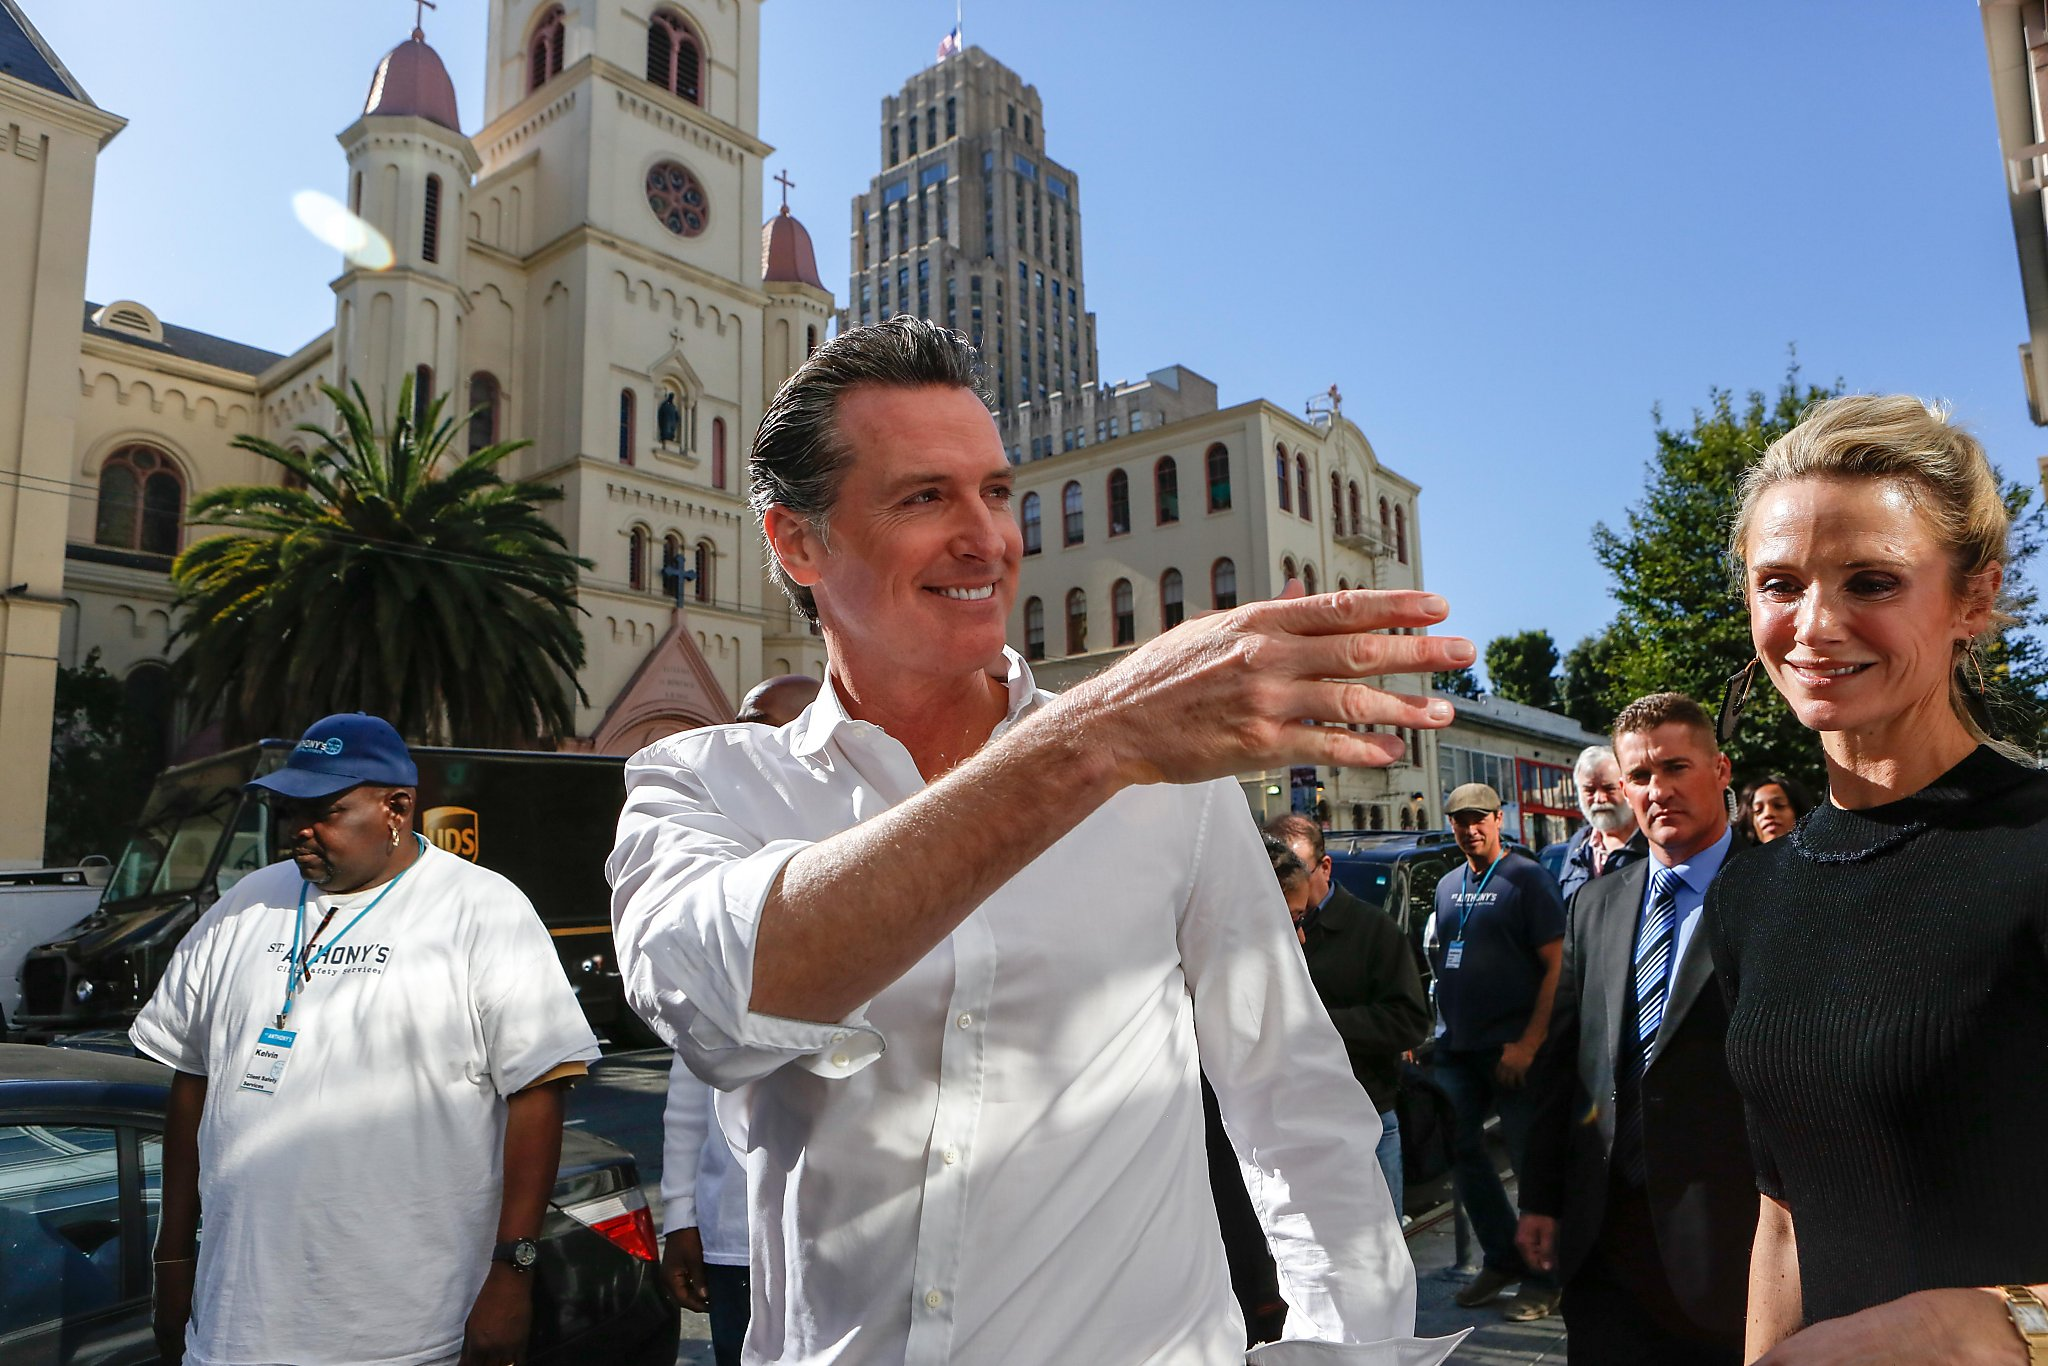 Gavin Newsom Putting Businesses In Blind Trust Before Becoming